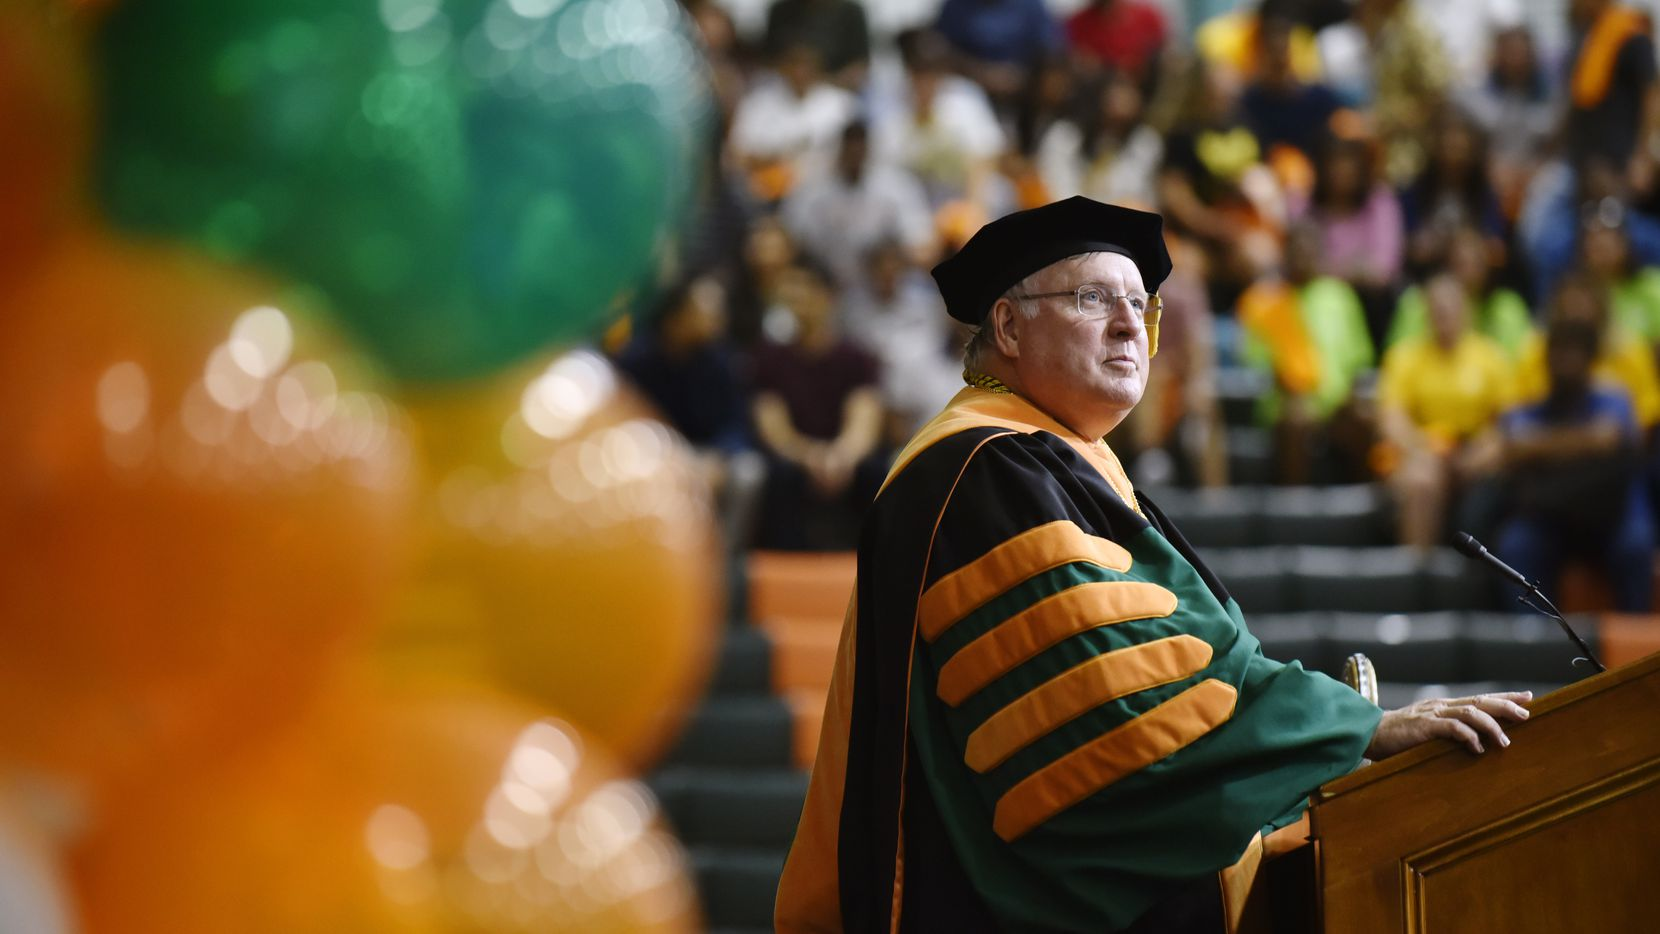 University of Texas at Dallas president Richard Benson, speaks during a new student convocation celebrating the 50th year of the university, Sunday Aug. 18, 2019 in Richardson.